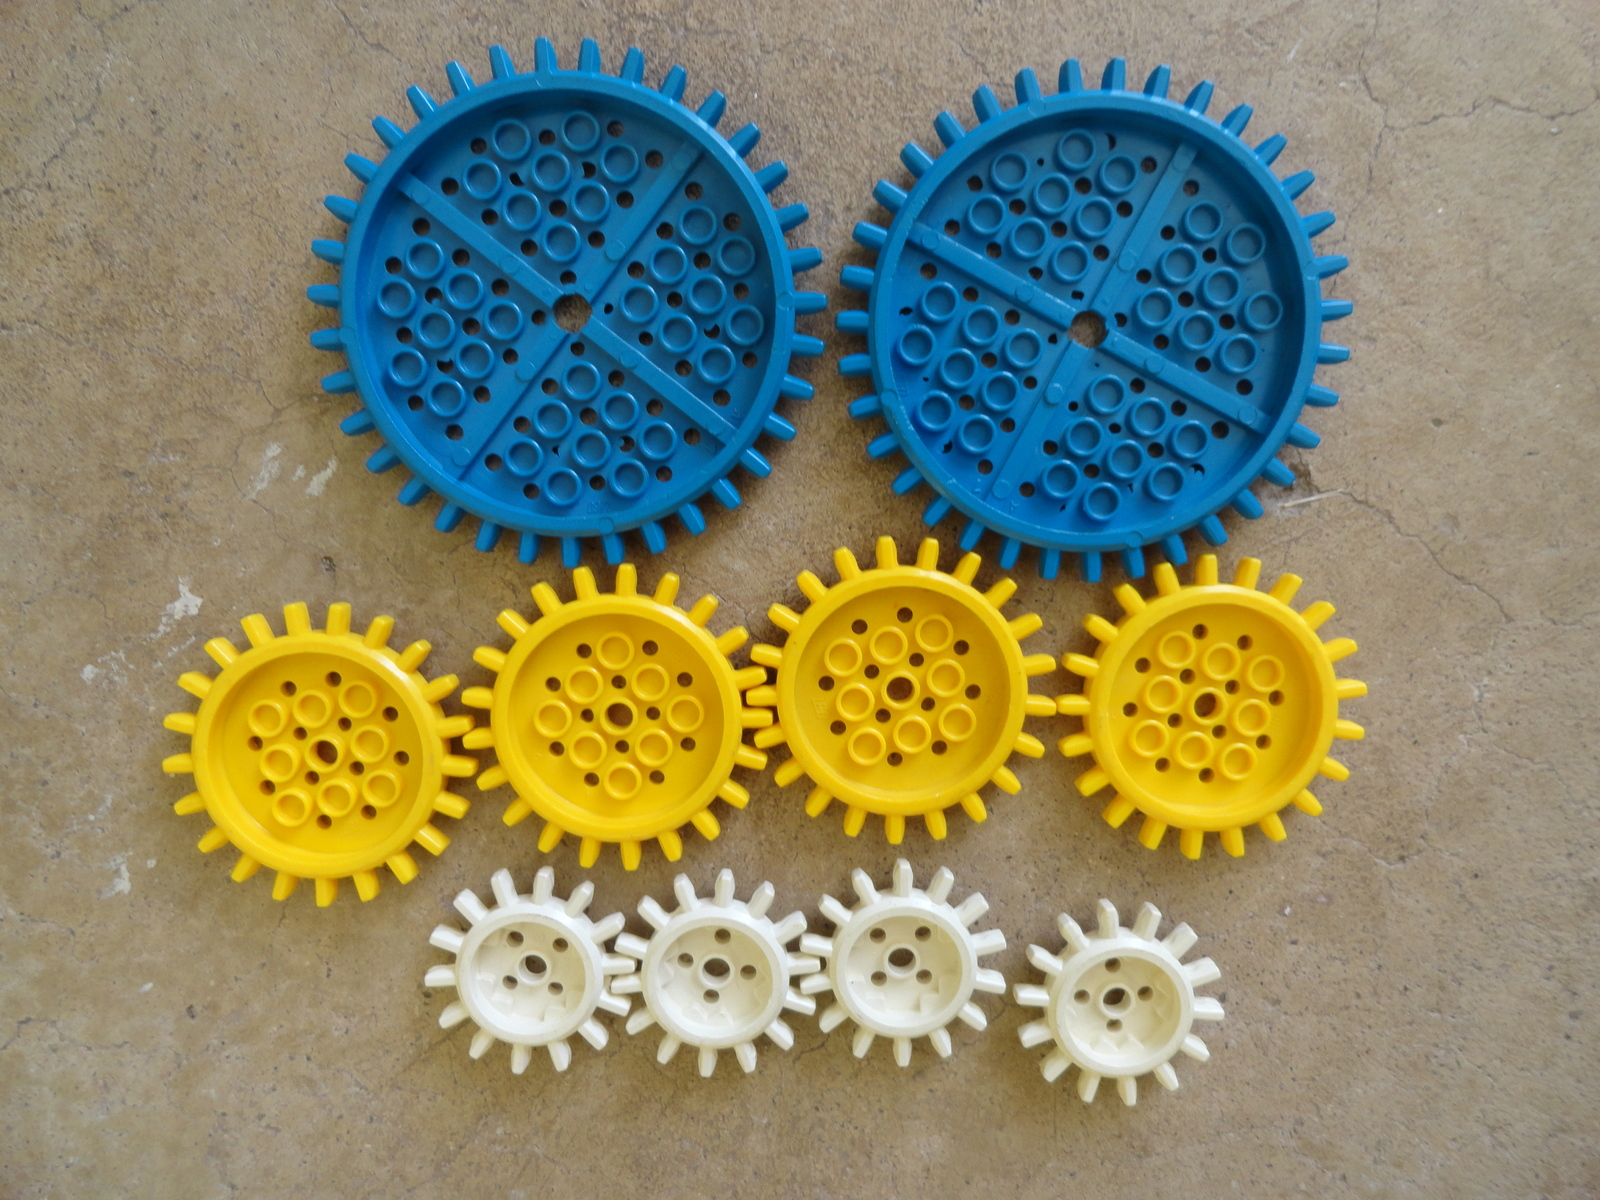 LEGO Lot of 2 Yellow 2x2 Specialty Space Plates with Bar Frame